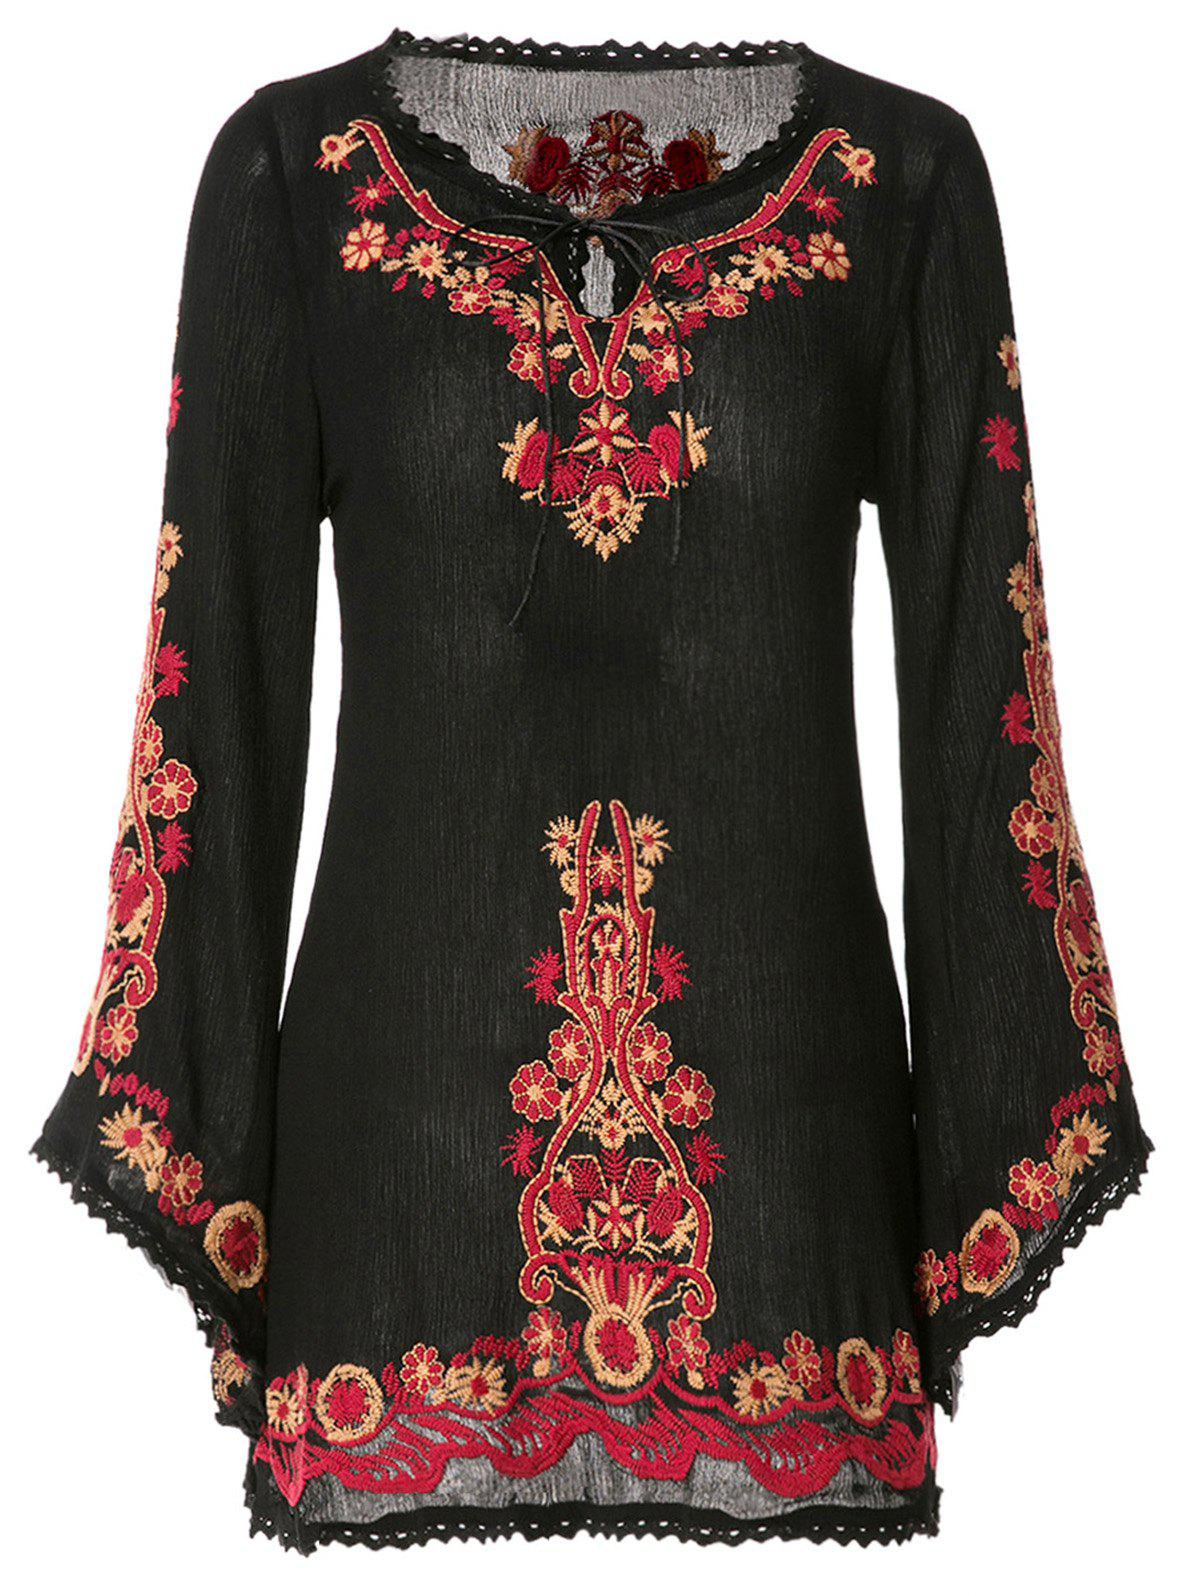 Ethnic Style V-Neck Floral Embroidery Lace Splicing Long Sleeve Dress For Women - BLACK ONE SIZE(FIT SIZE XS TO M)